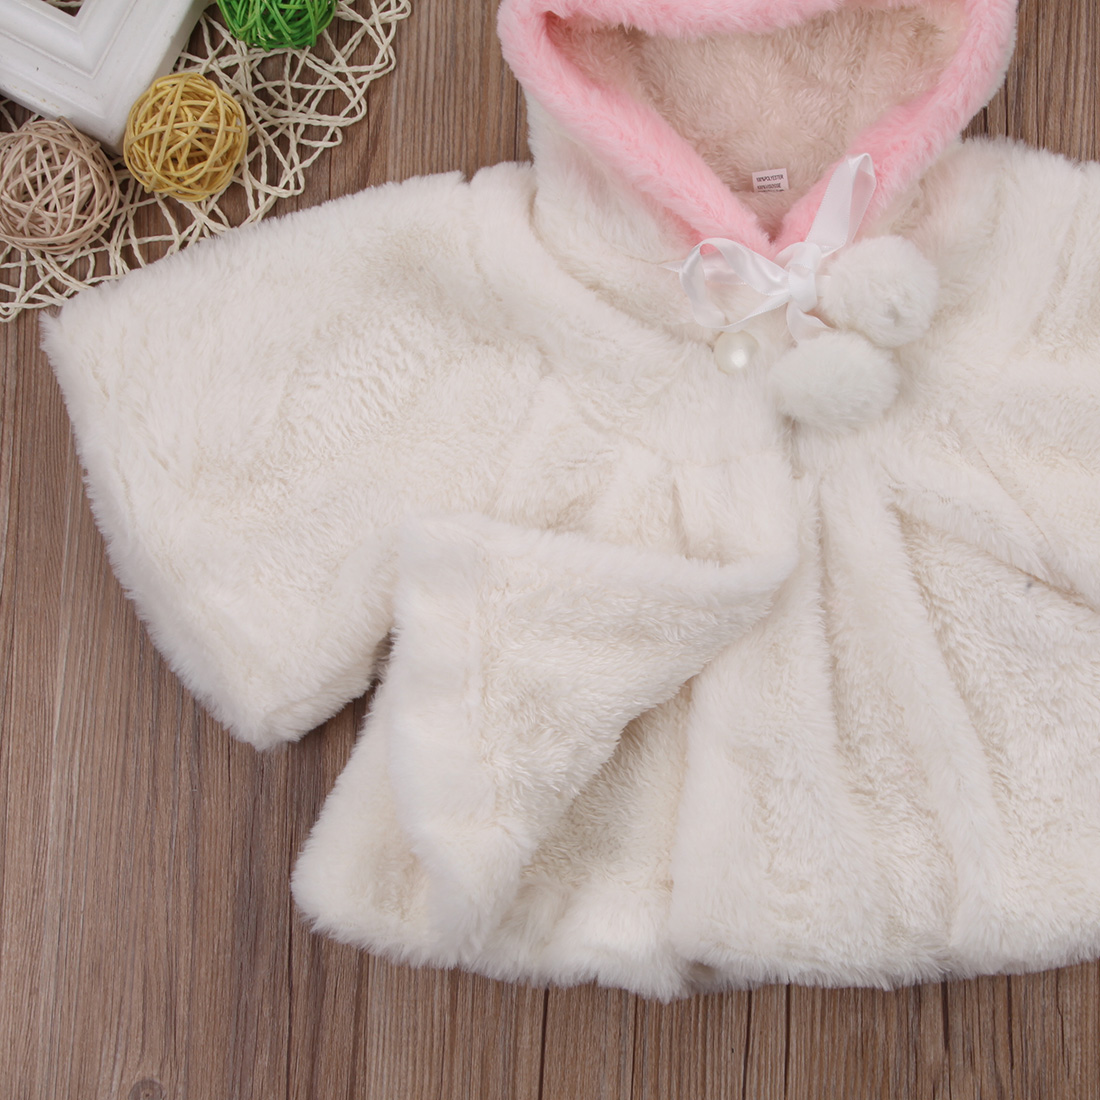 Baby Toddler Girl Warm Fleece Winter 3d Ear Coat Snowsuits Jacket Cloak Clothes Infant Girls Lovely Daily Soft Jackets Coats Girls' Clothing